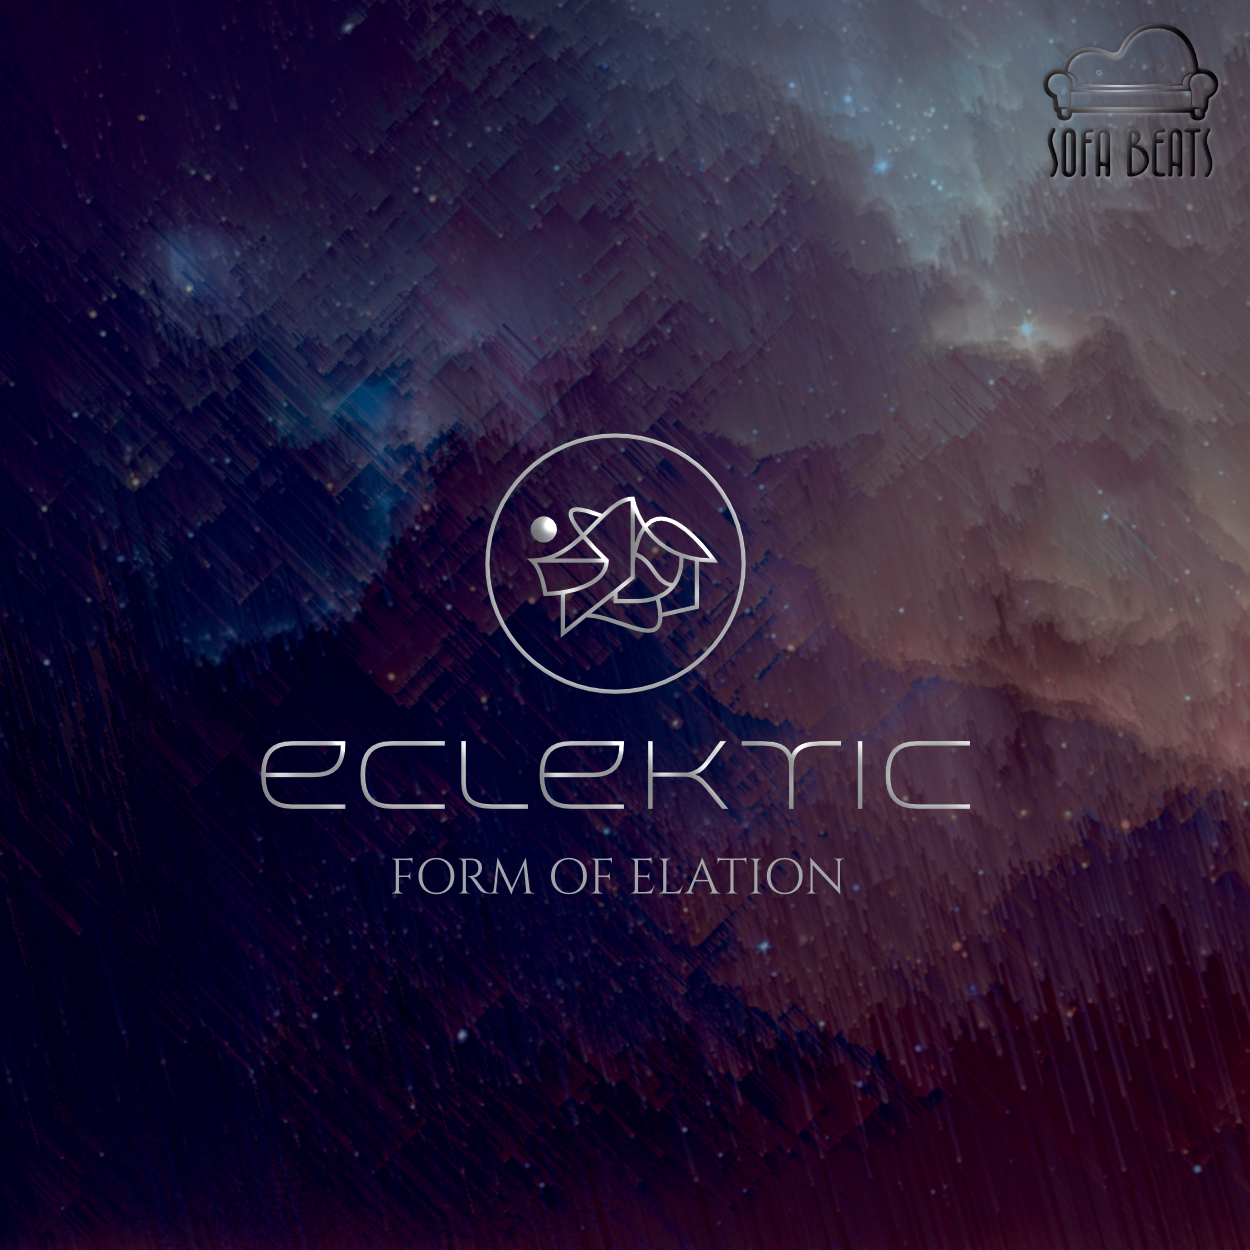 ECLEKTIC_Form-of-Elation-incl-Logo.png